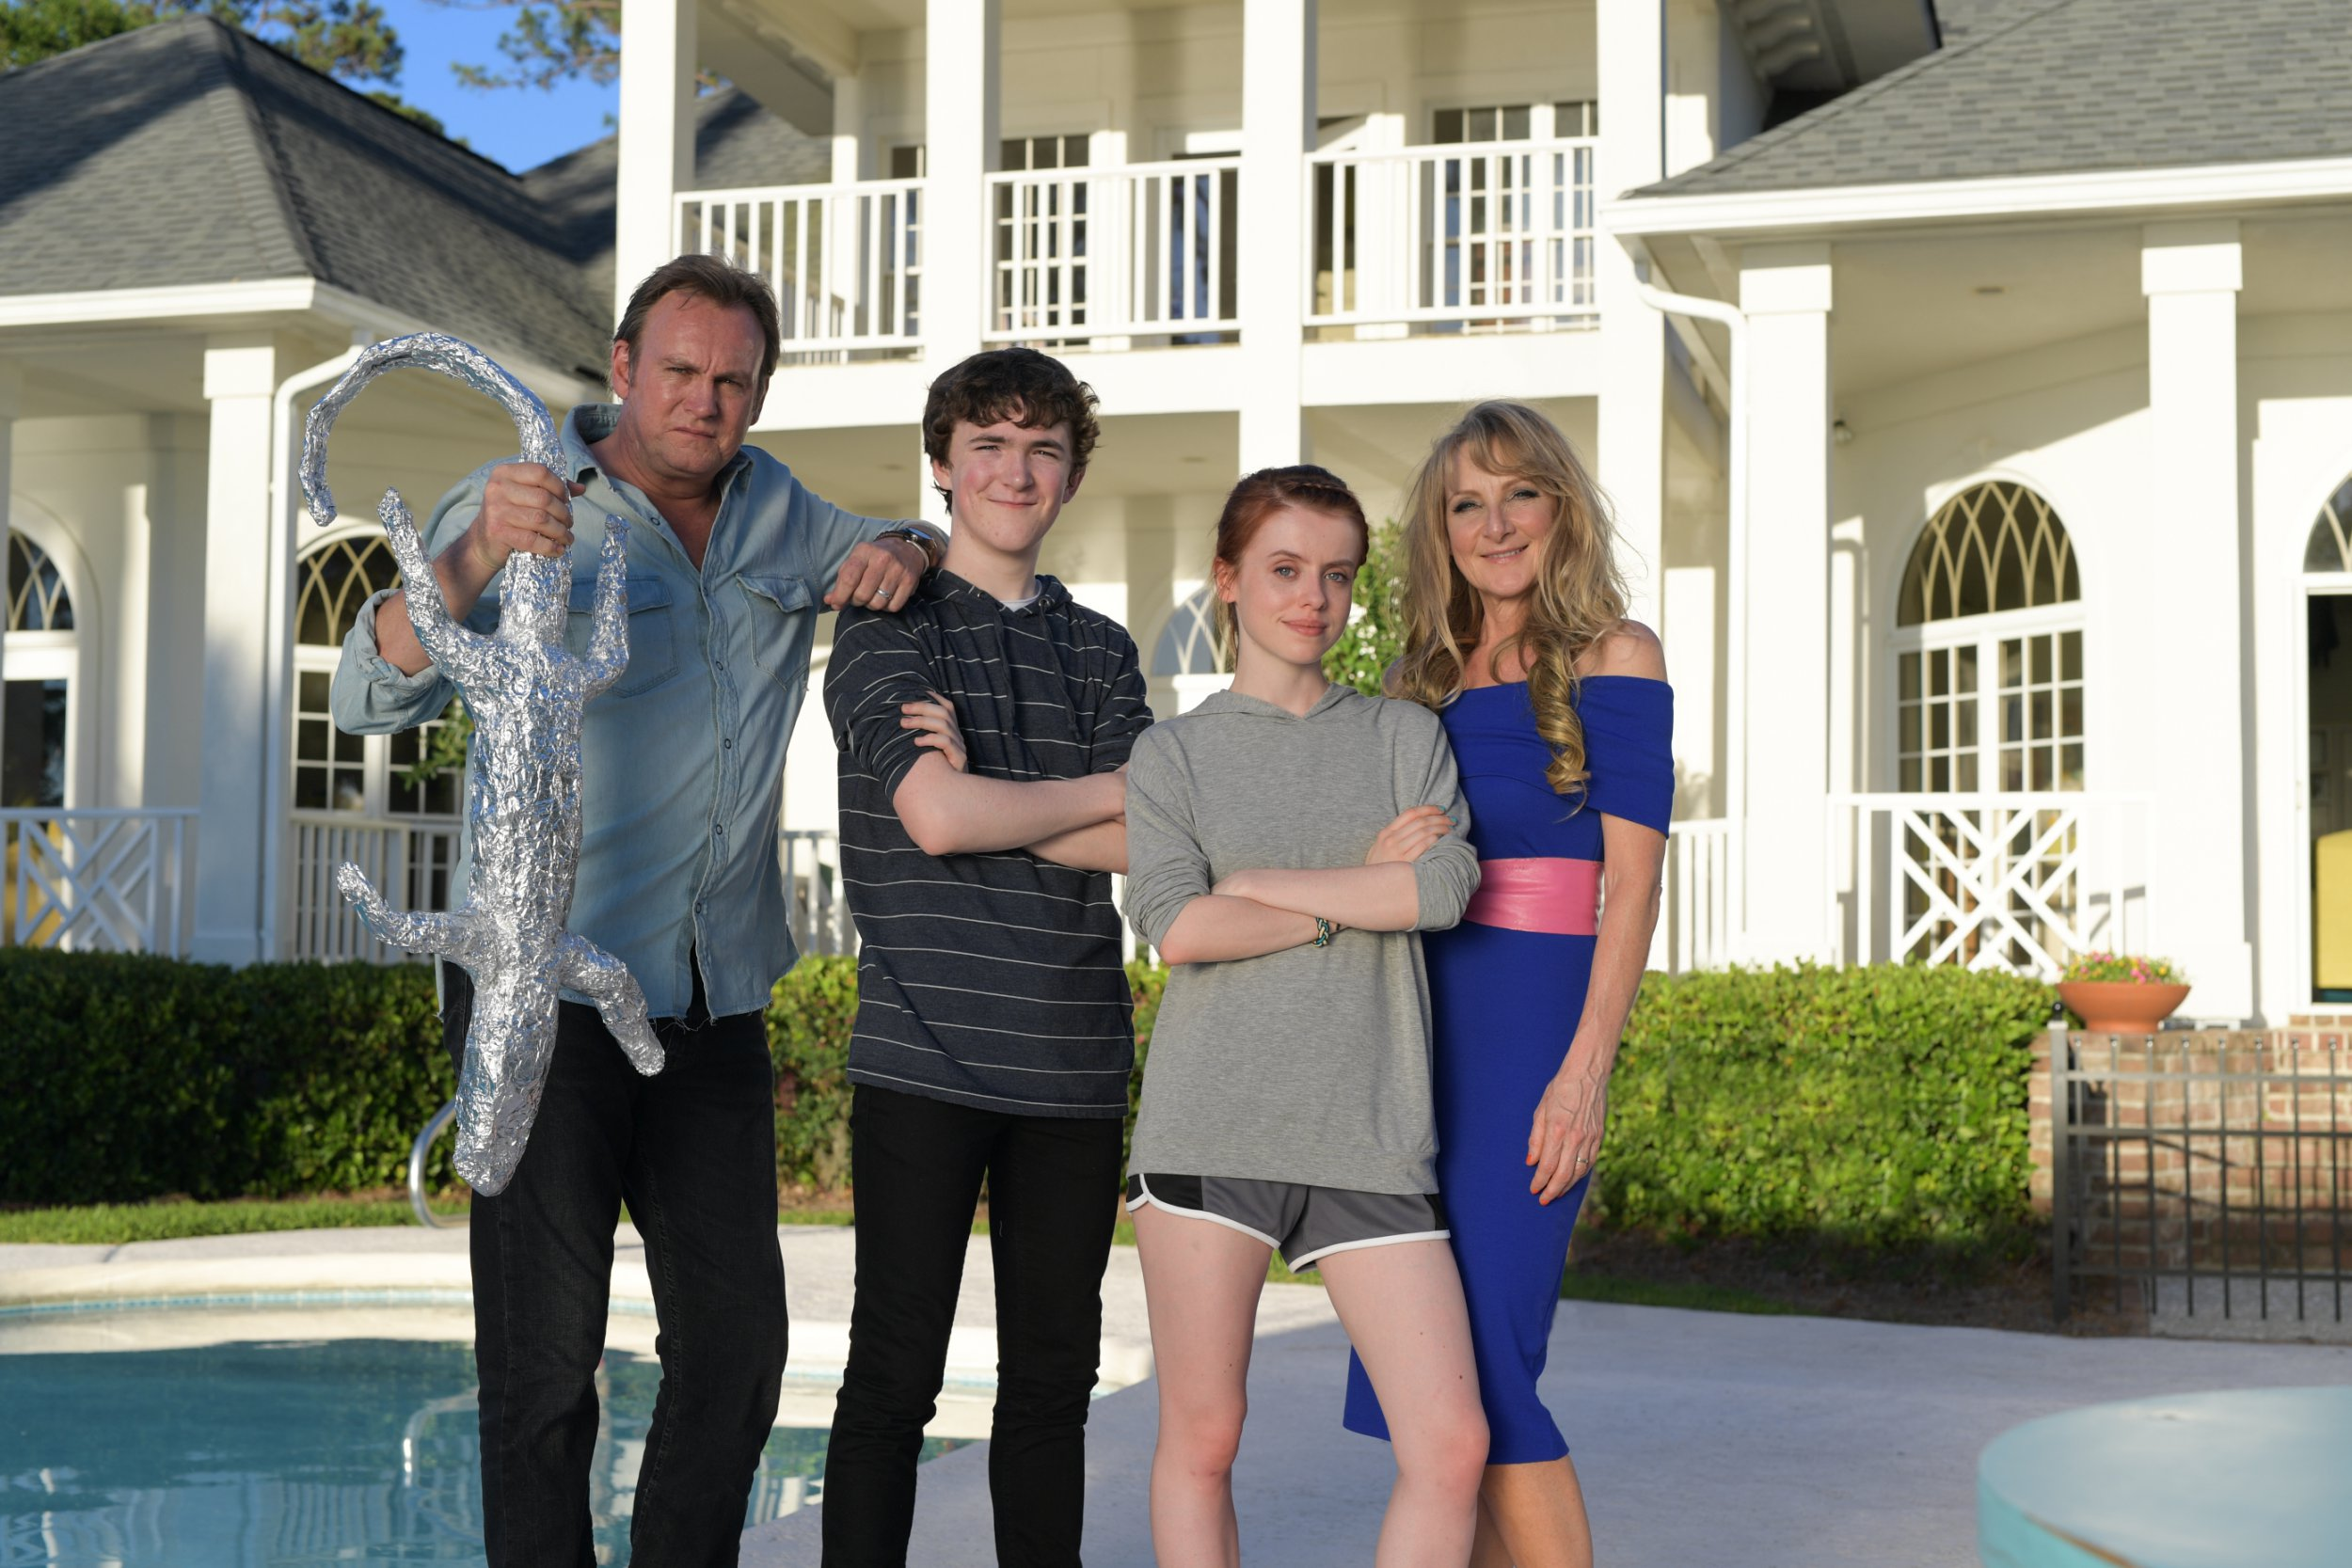 Sky1's Living The Dream is a sweet comedy about British expats living in the Deep South – just don't mention Trump